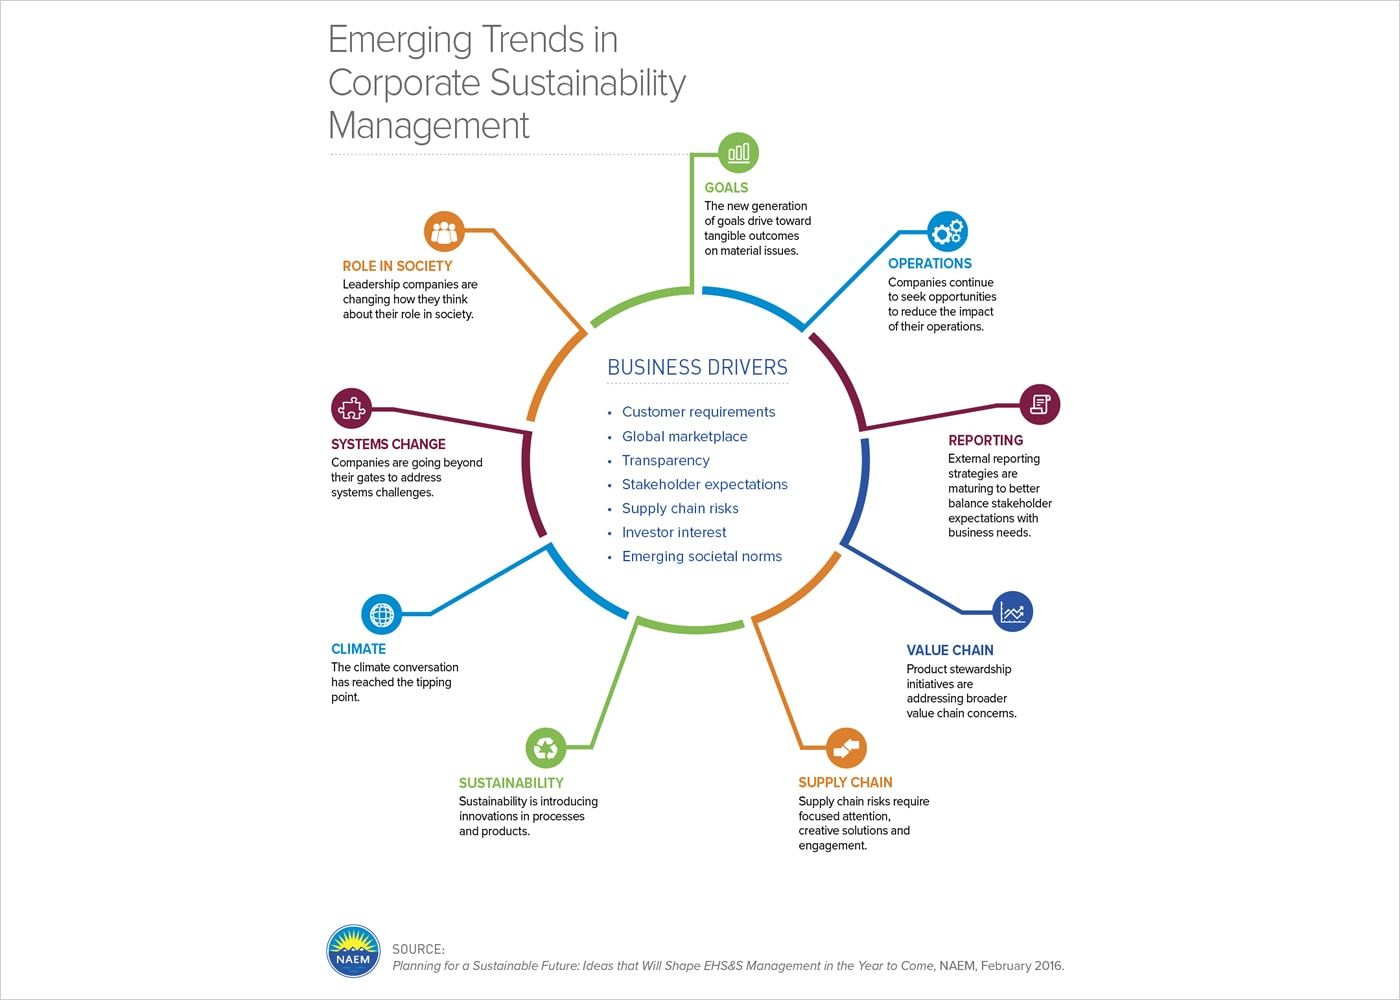 Snapshot of the Emerging Trends in Corporate Sustainability